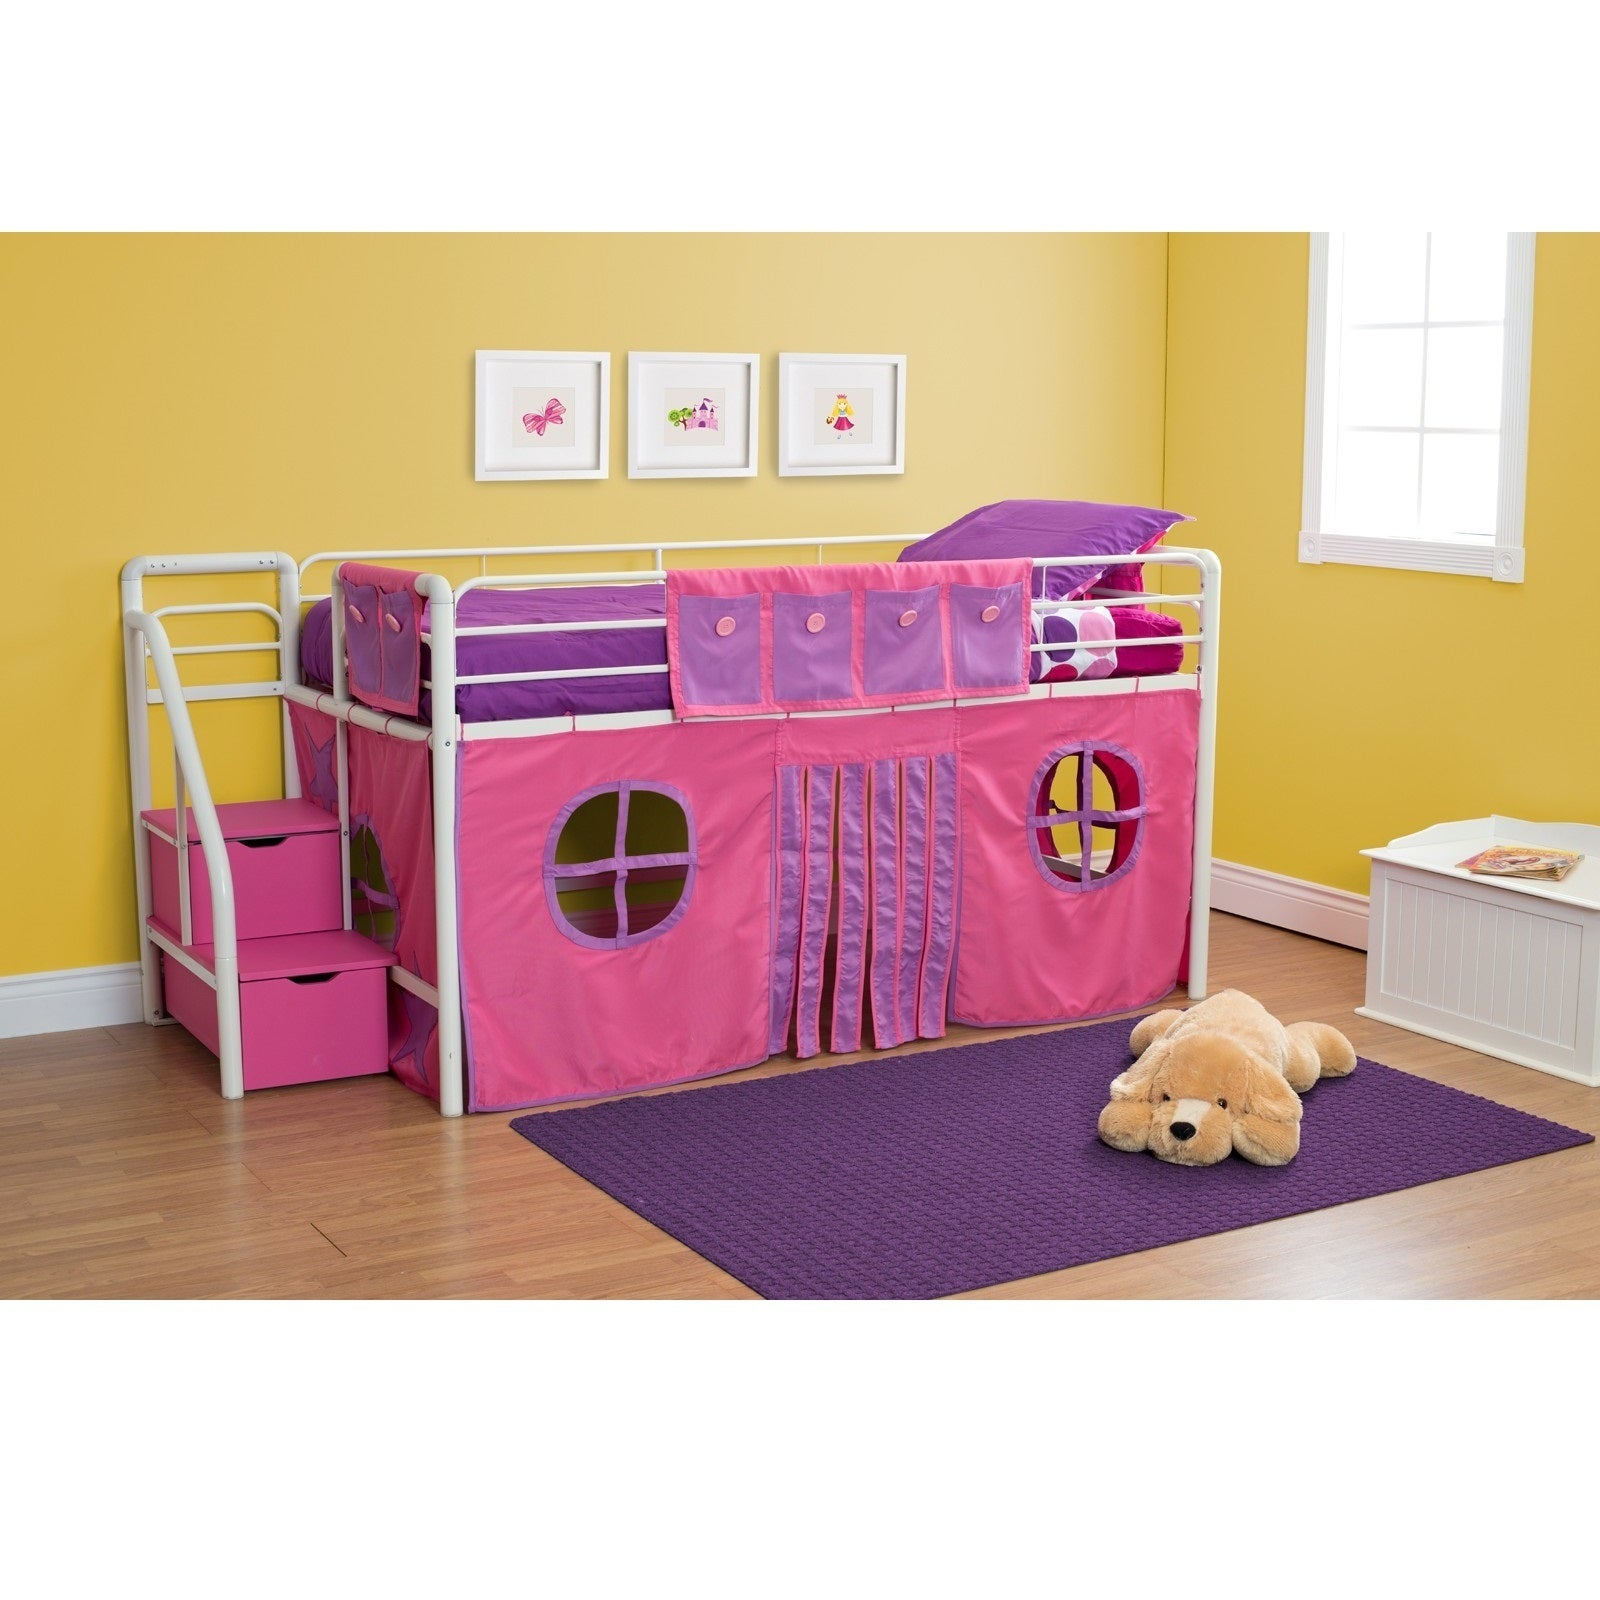 DHP Curtain Set for Loft Bed (Pink Curtain Set) (Polyeste...